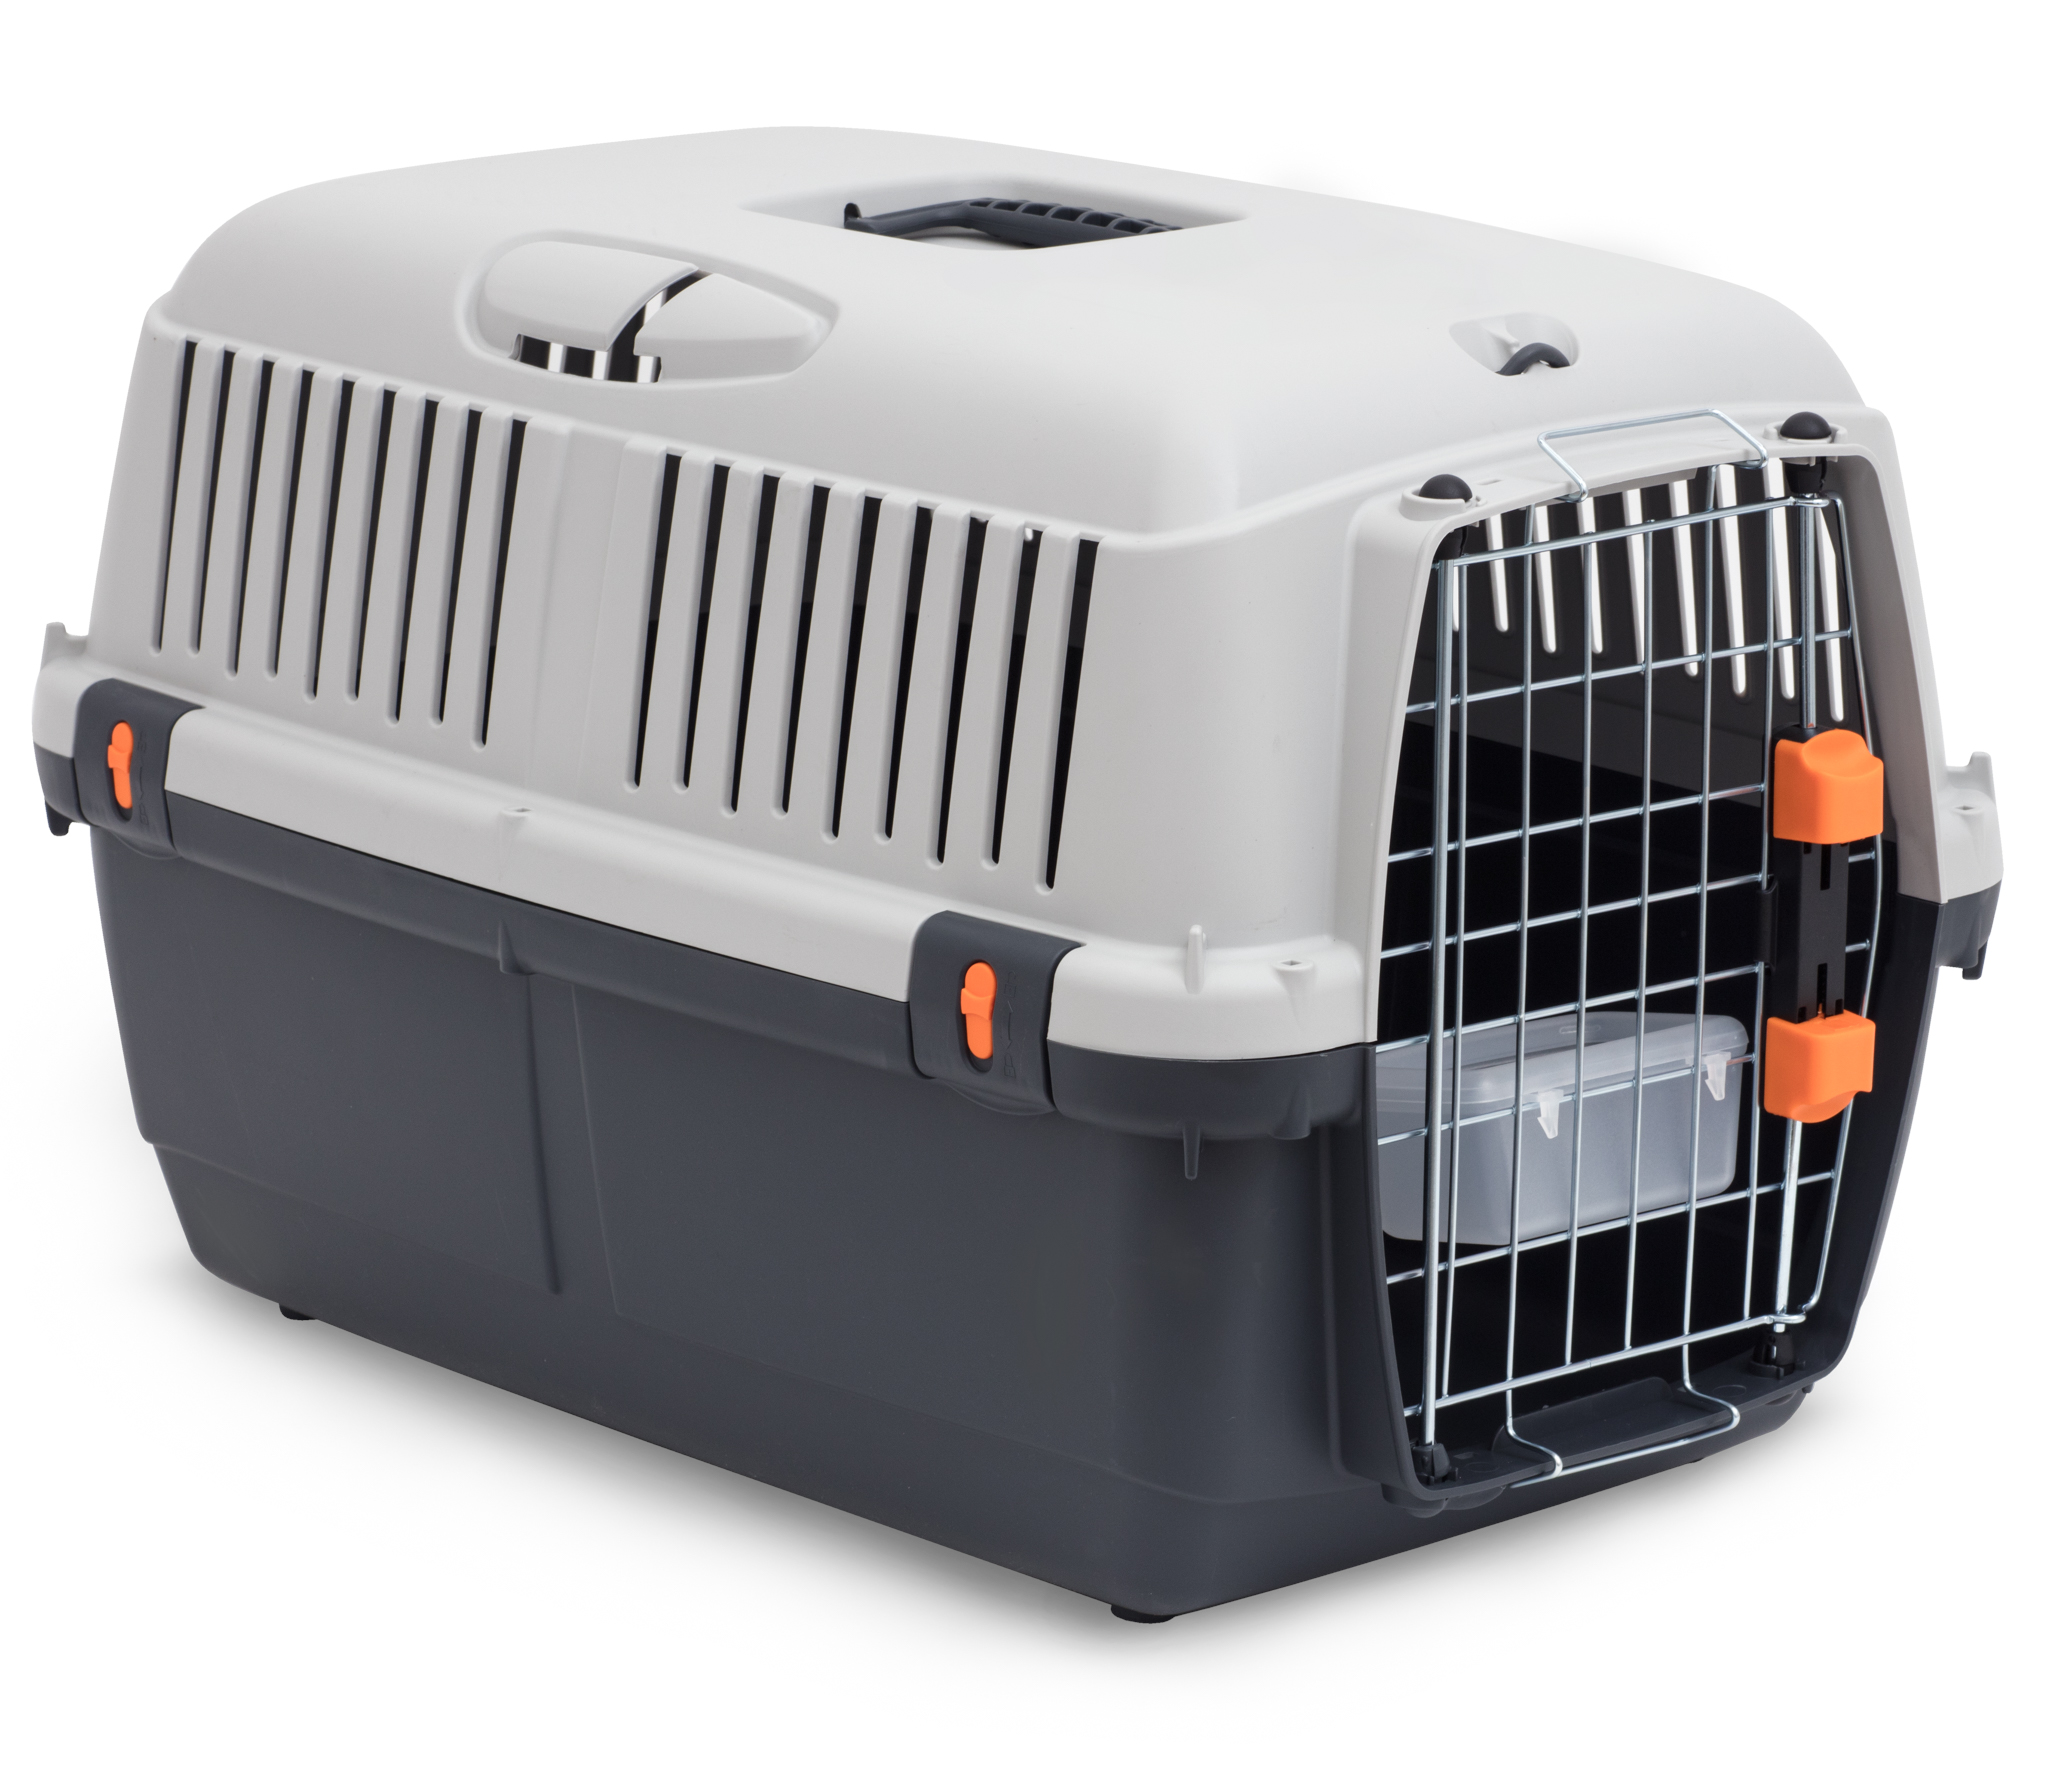 Iata Carrier Bracco 2 L55 X W 35 X H 35 Naturally For Pets